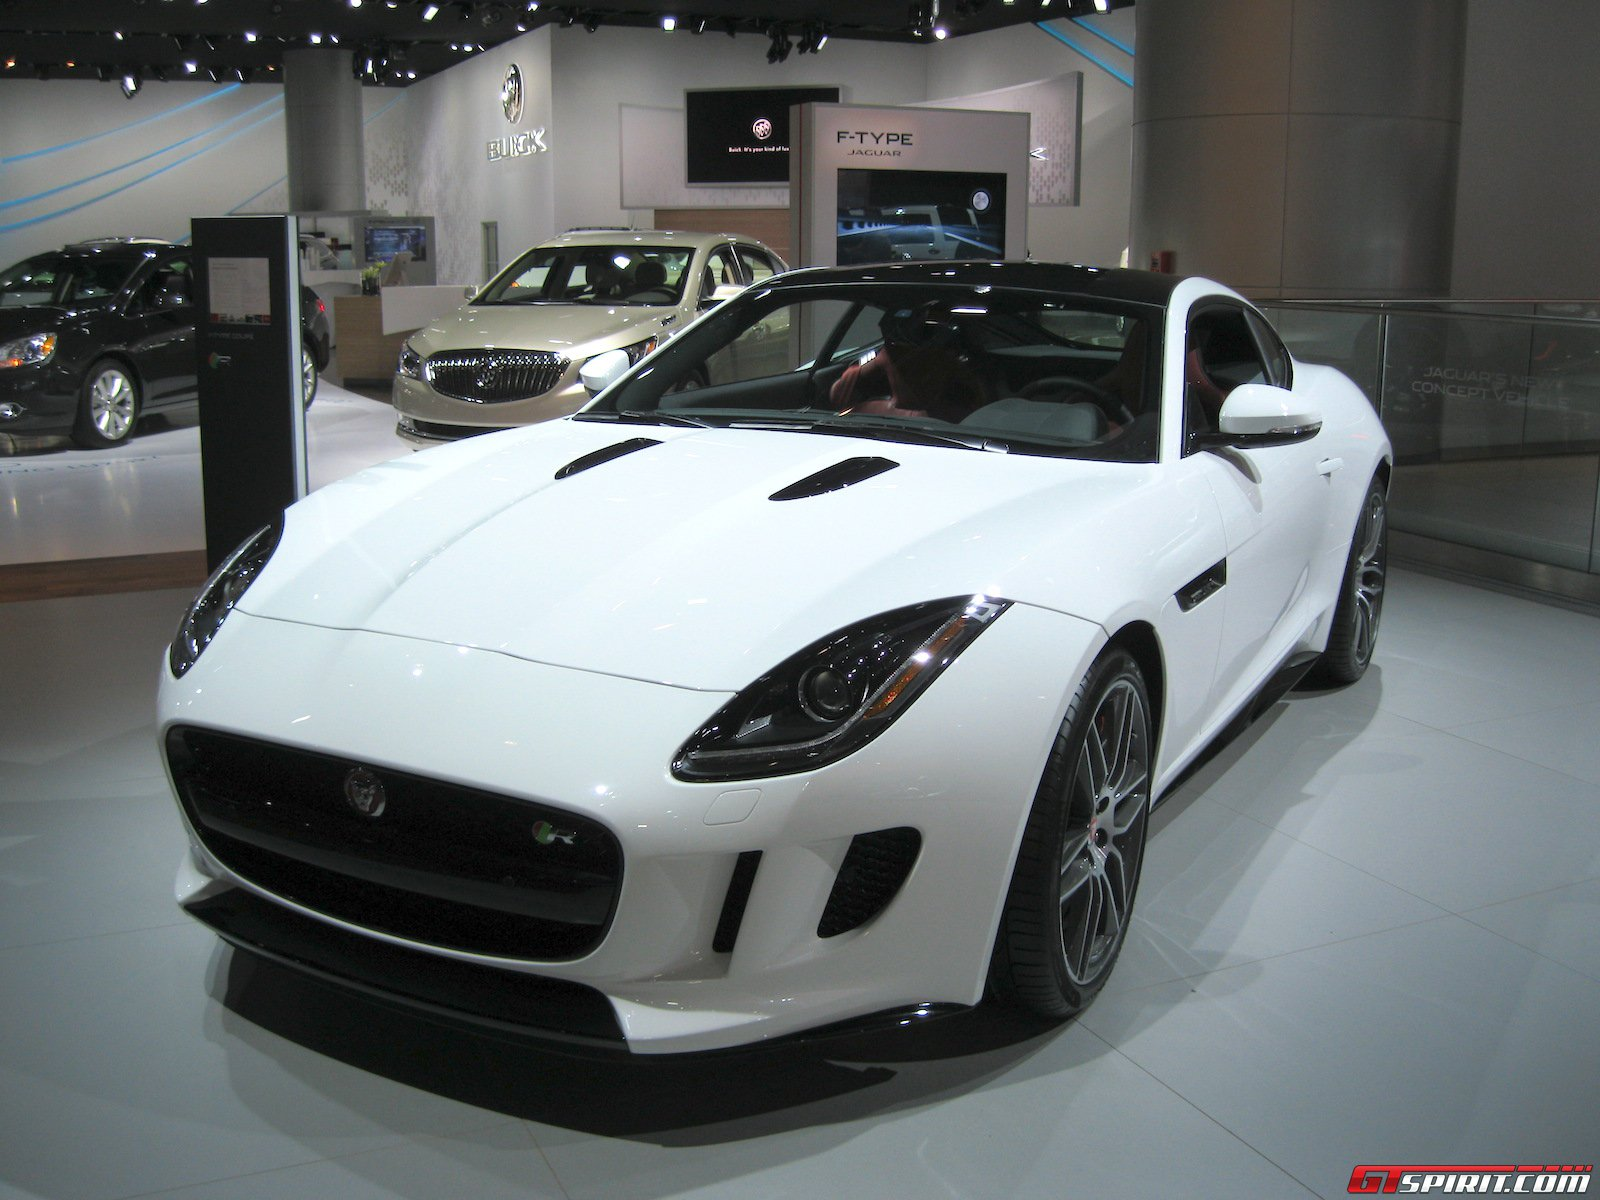 Detroit 2014: Jaguar F Type Coupé